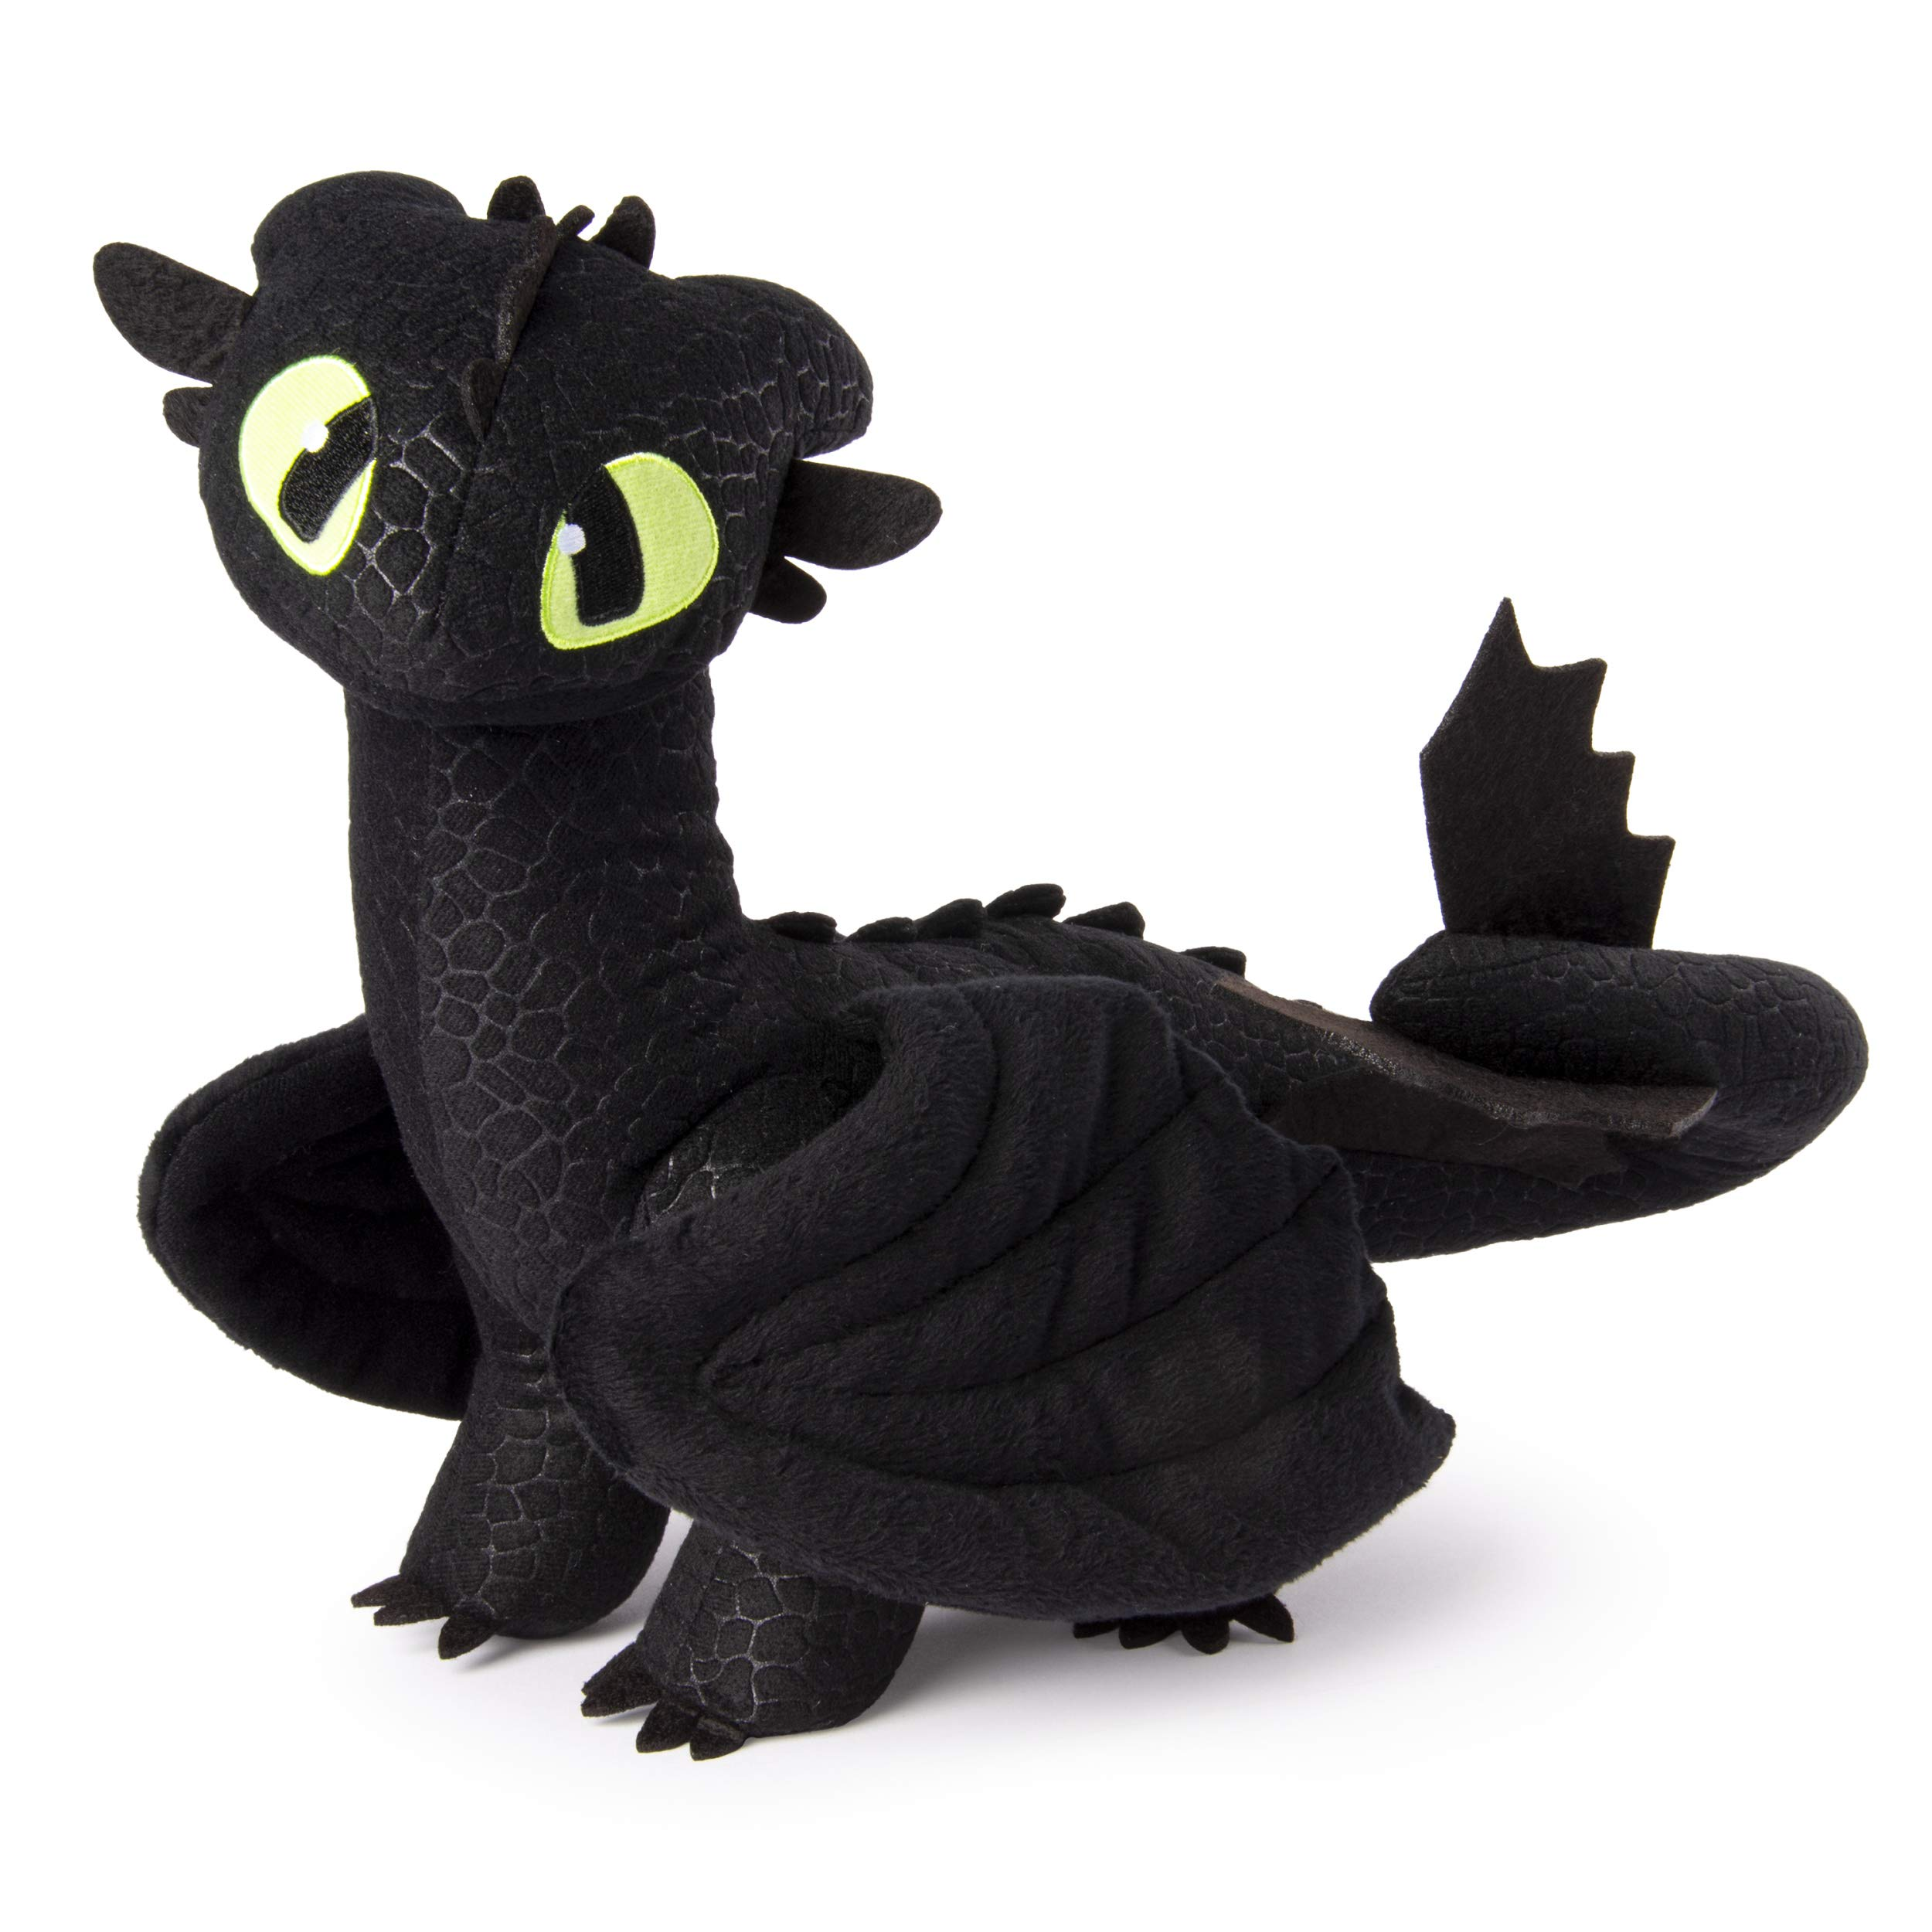 Train Your Dragon Plush B07GTB22VT/